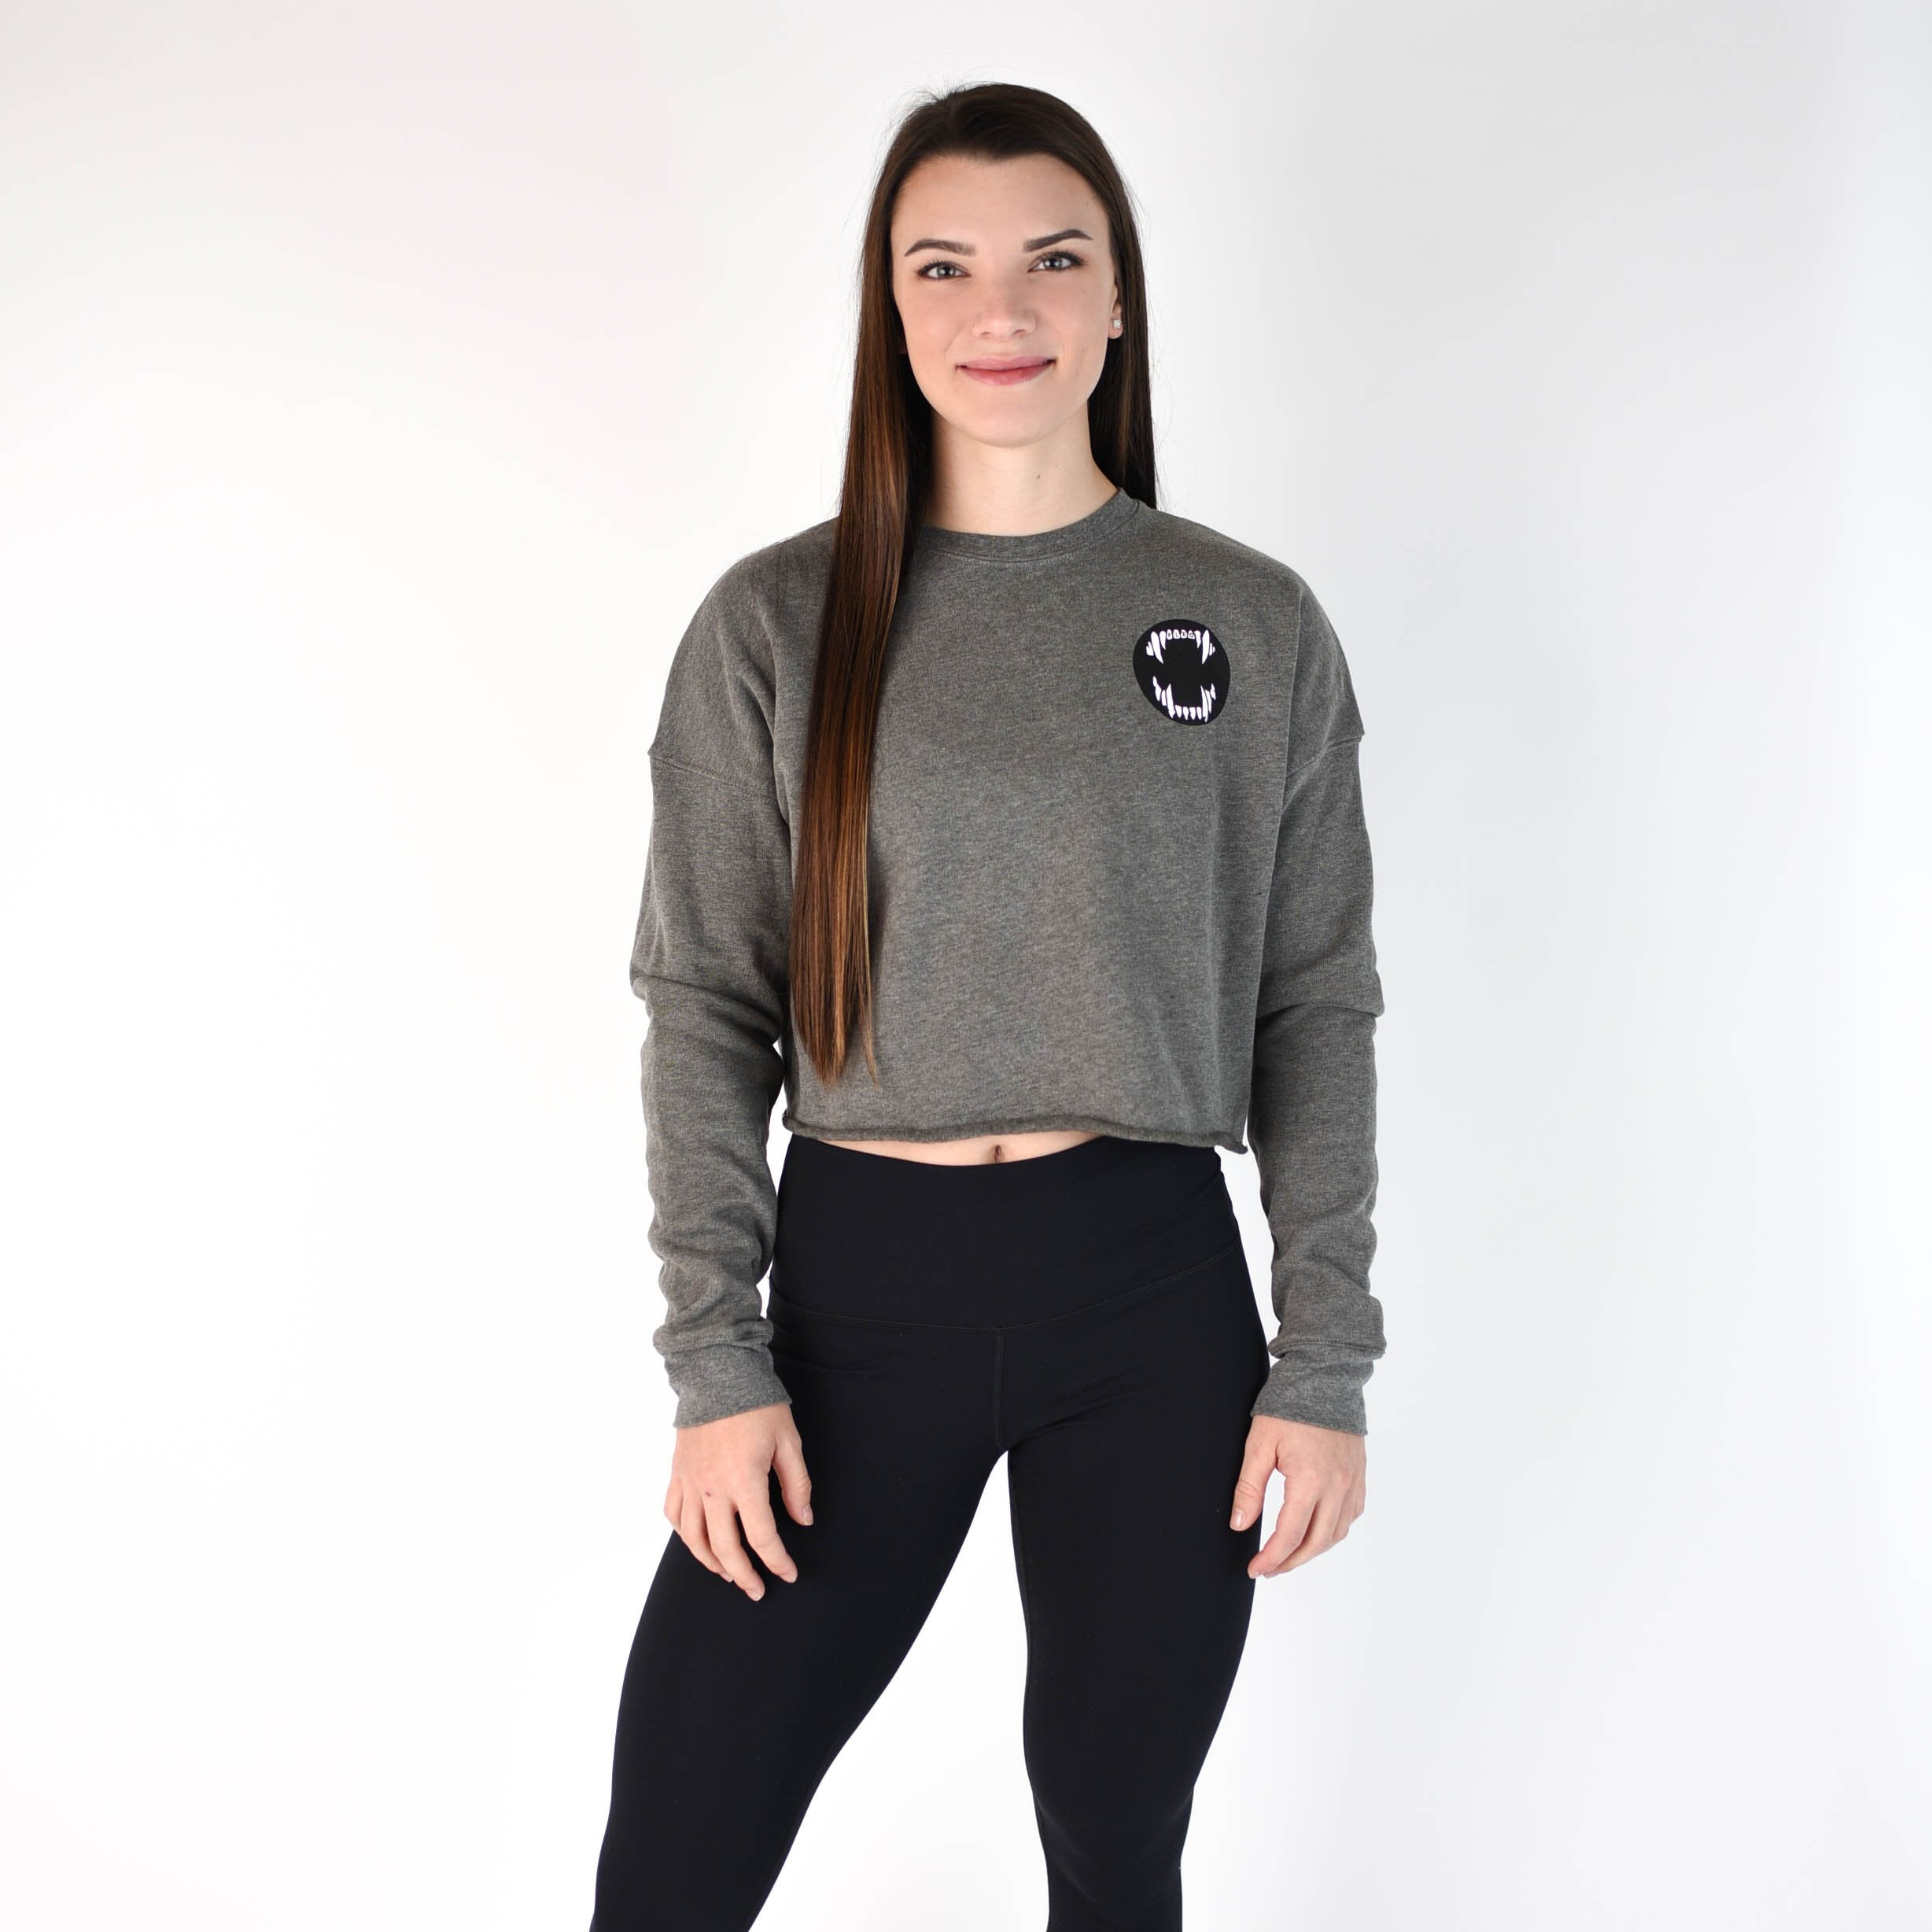 Fang Thang Cropped Sweatshirt - Heather Gray